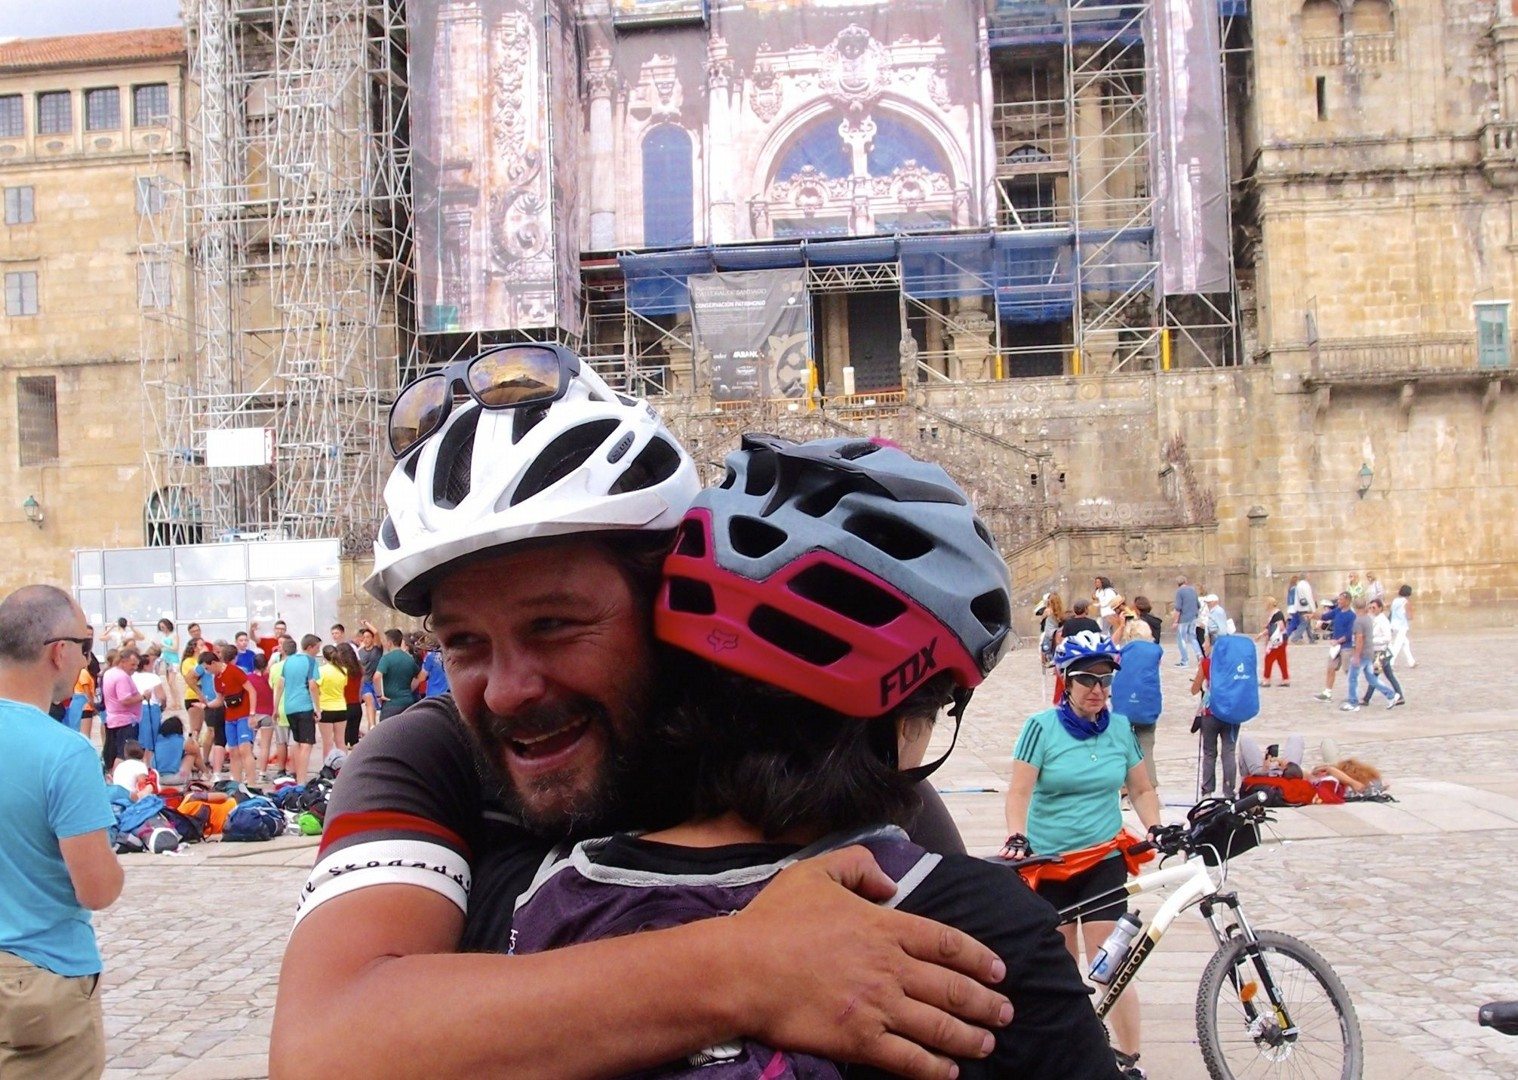 Caminodesantiago2.jpg - Northern Spain - Camino de Santiago - Guided Leisure Cycling Holiday - Leisure Cycling